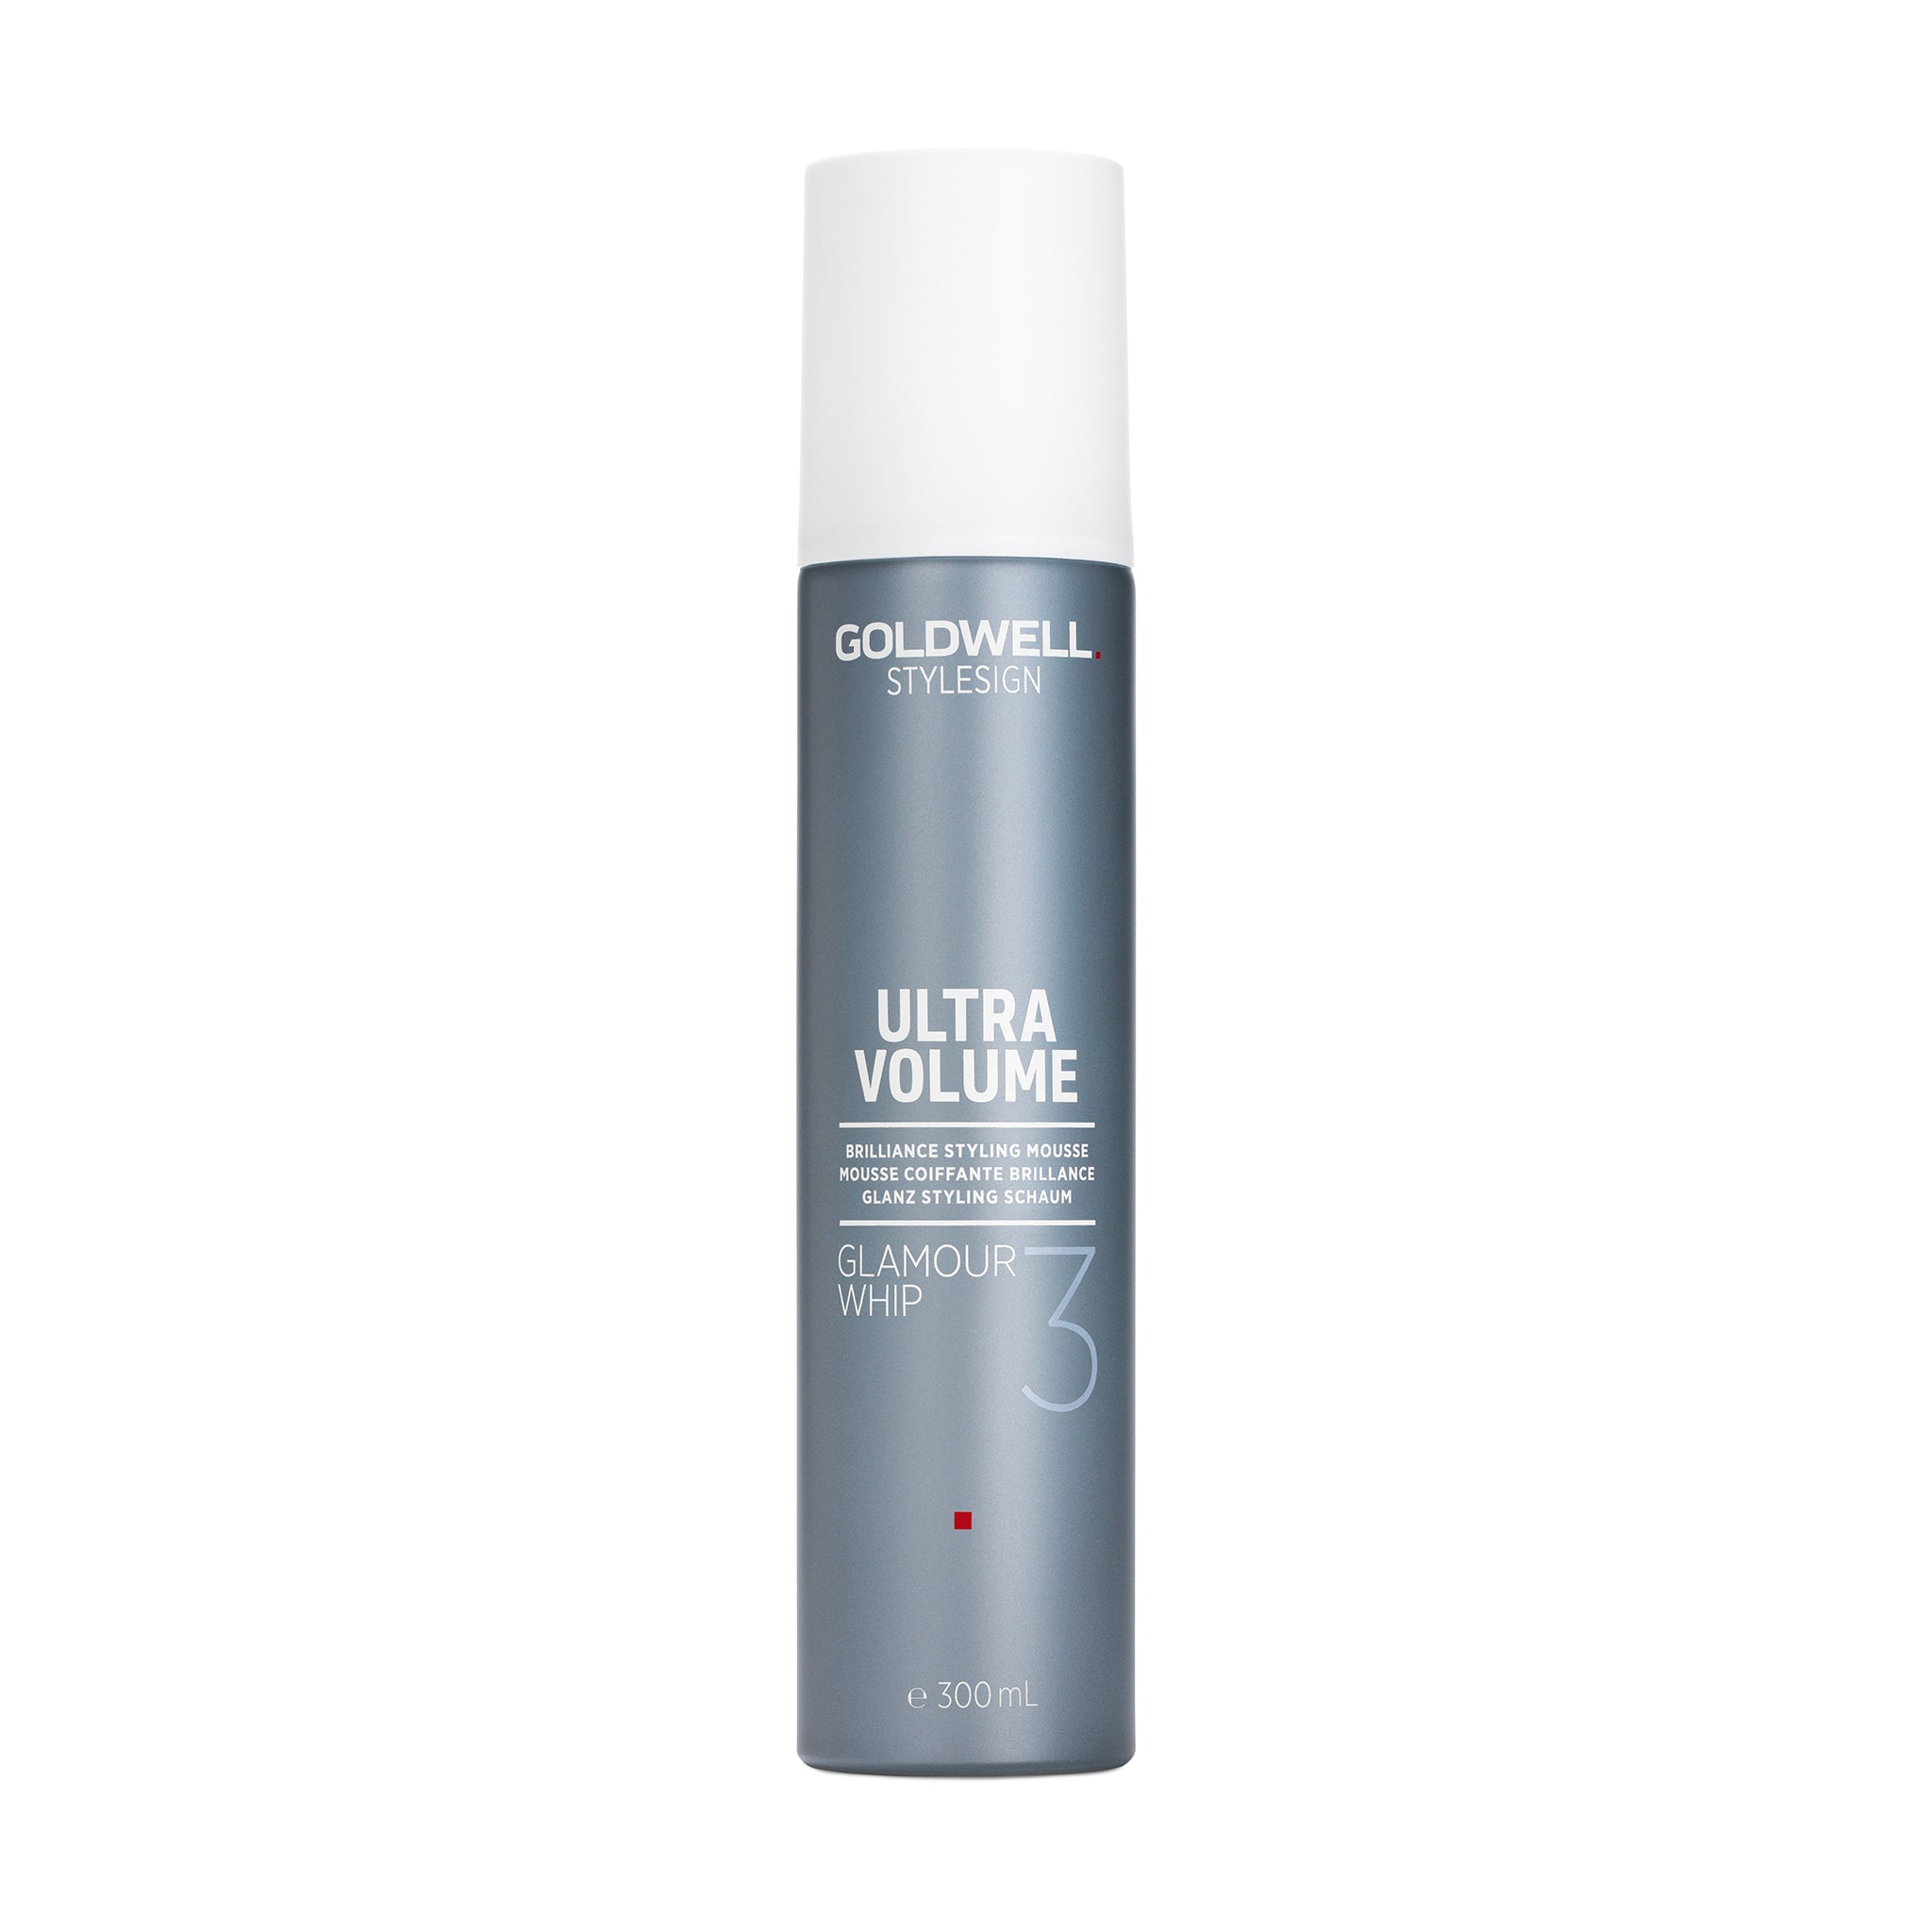 Goldwell Stylesign Ultra Volume Glamour Whip Brilliancve Styling Mousse 300ml